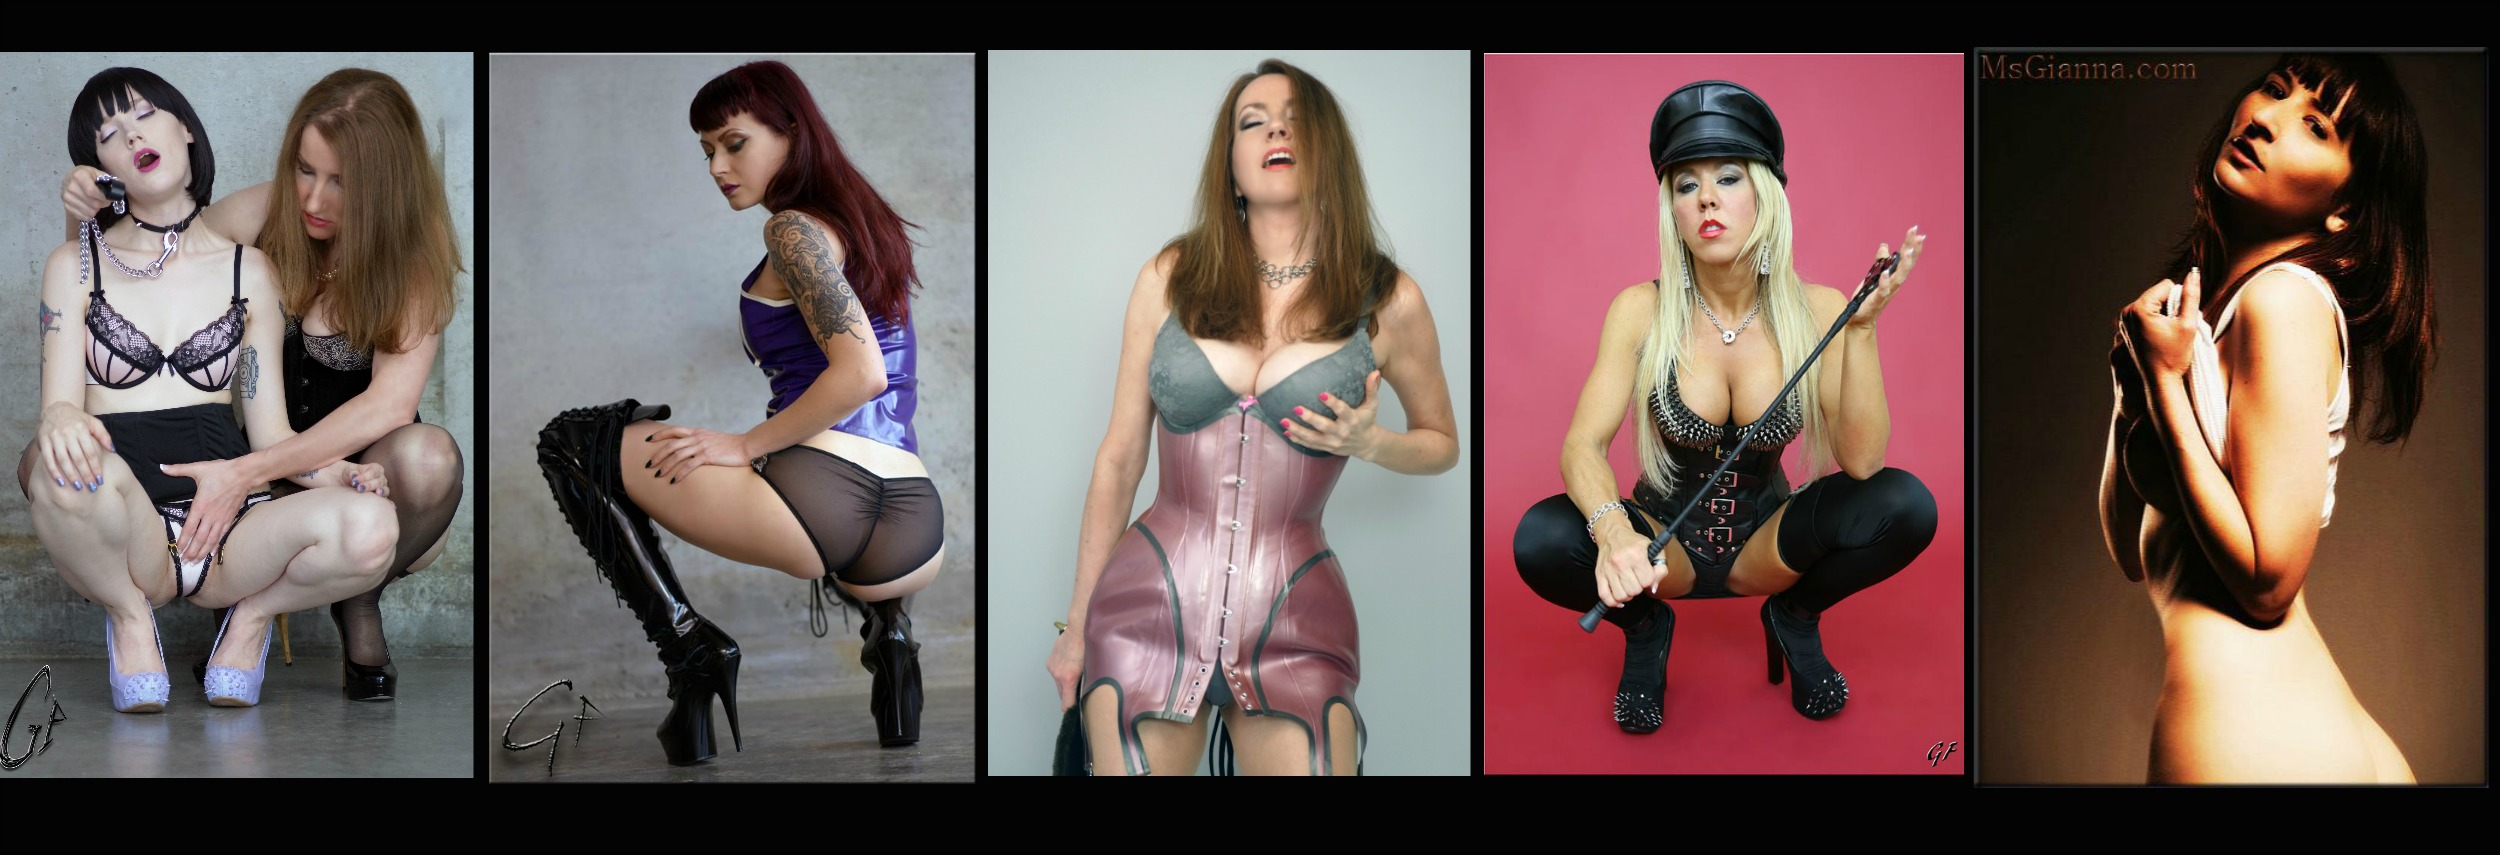 Domme_banner2_sm-1